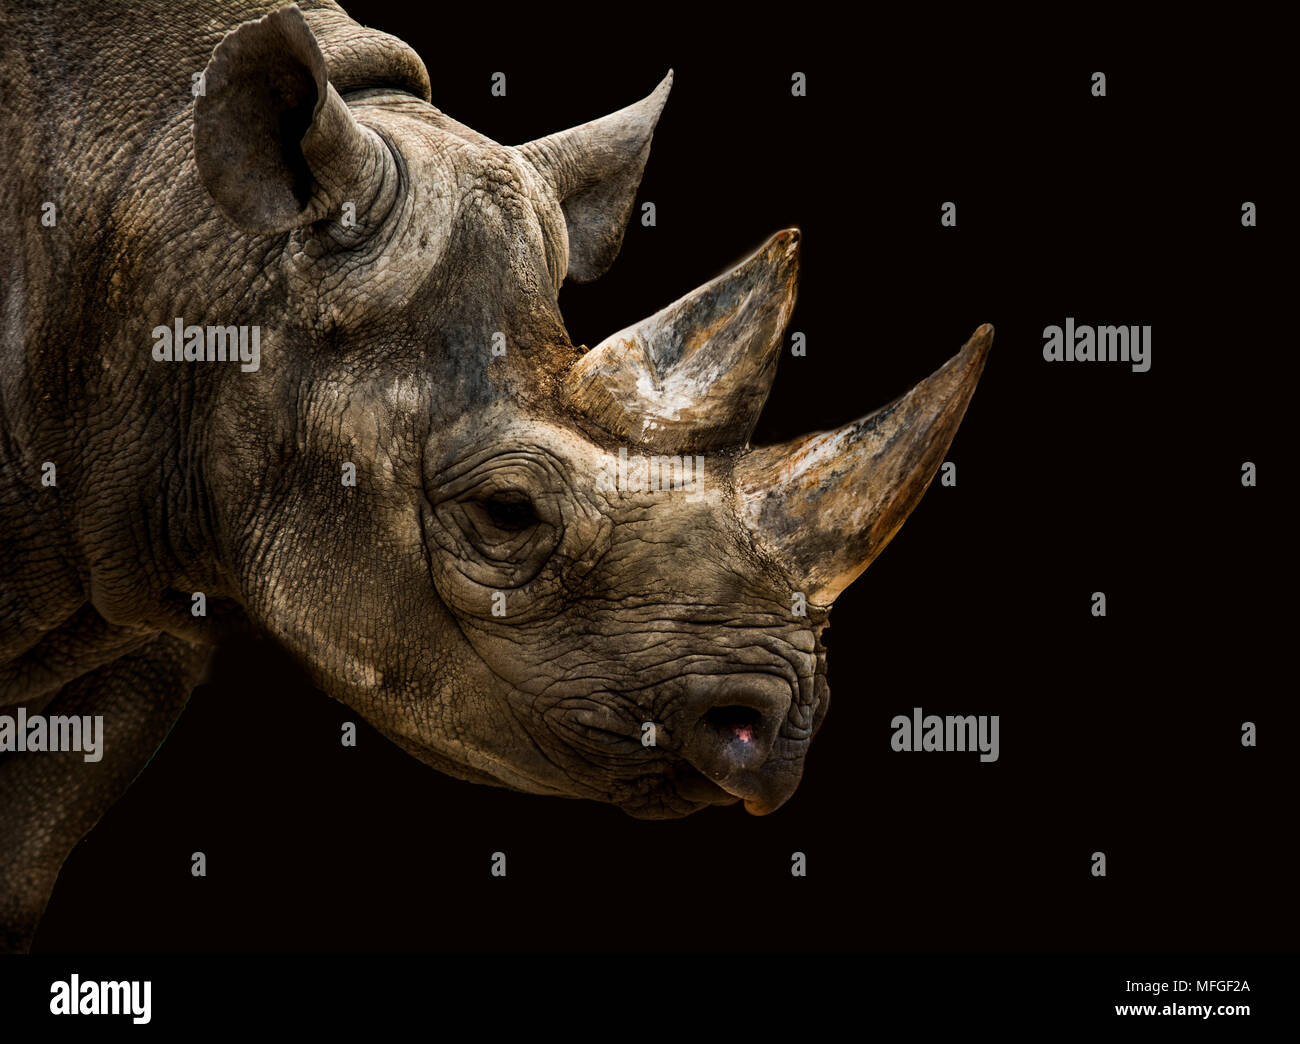 Black Rhino  with strong features - Stock Image